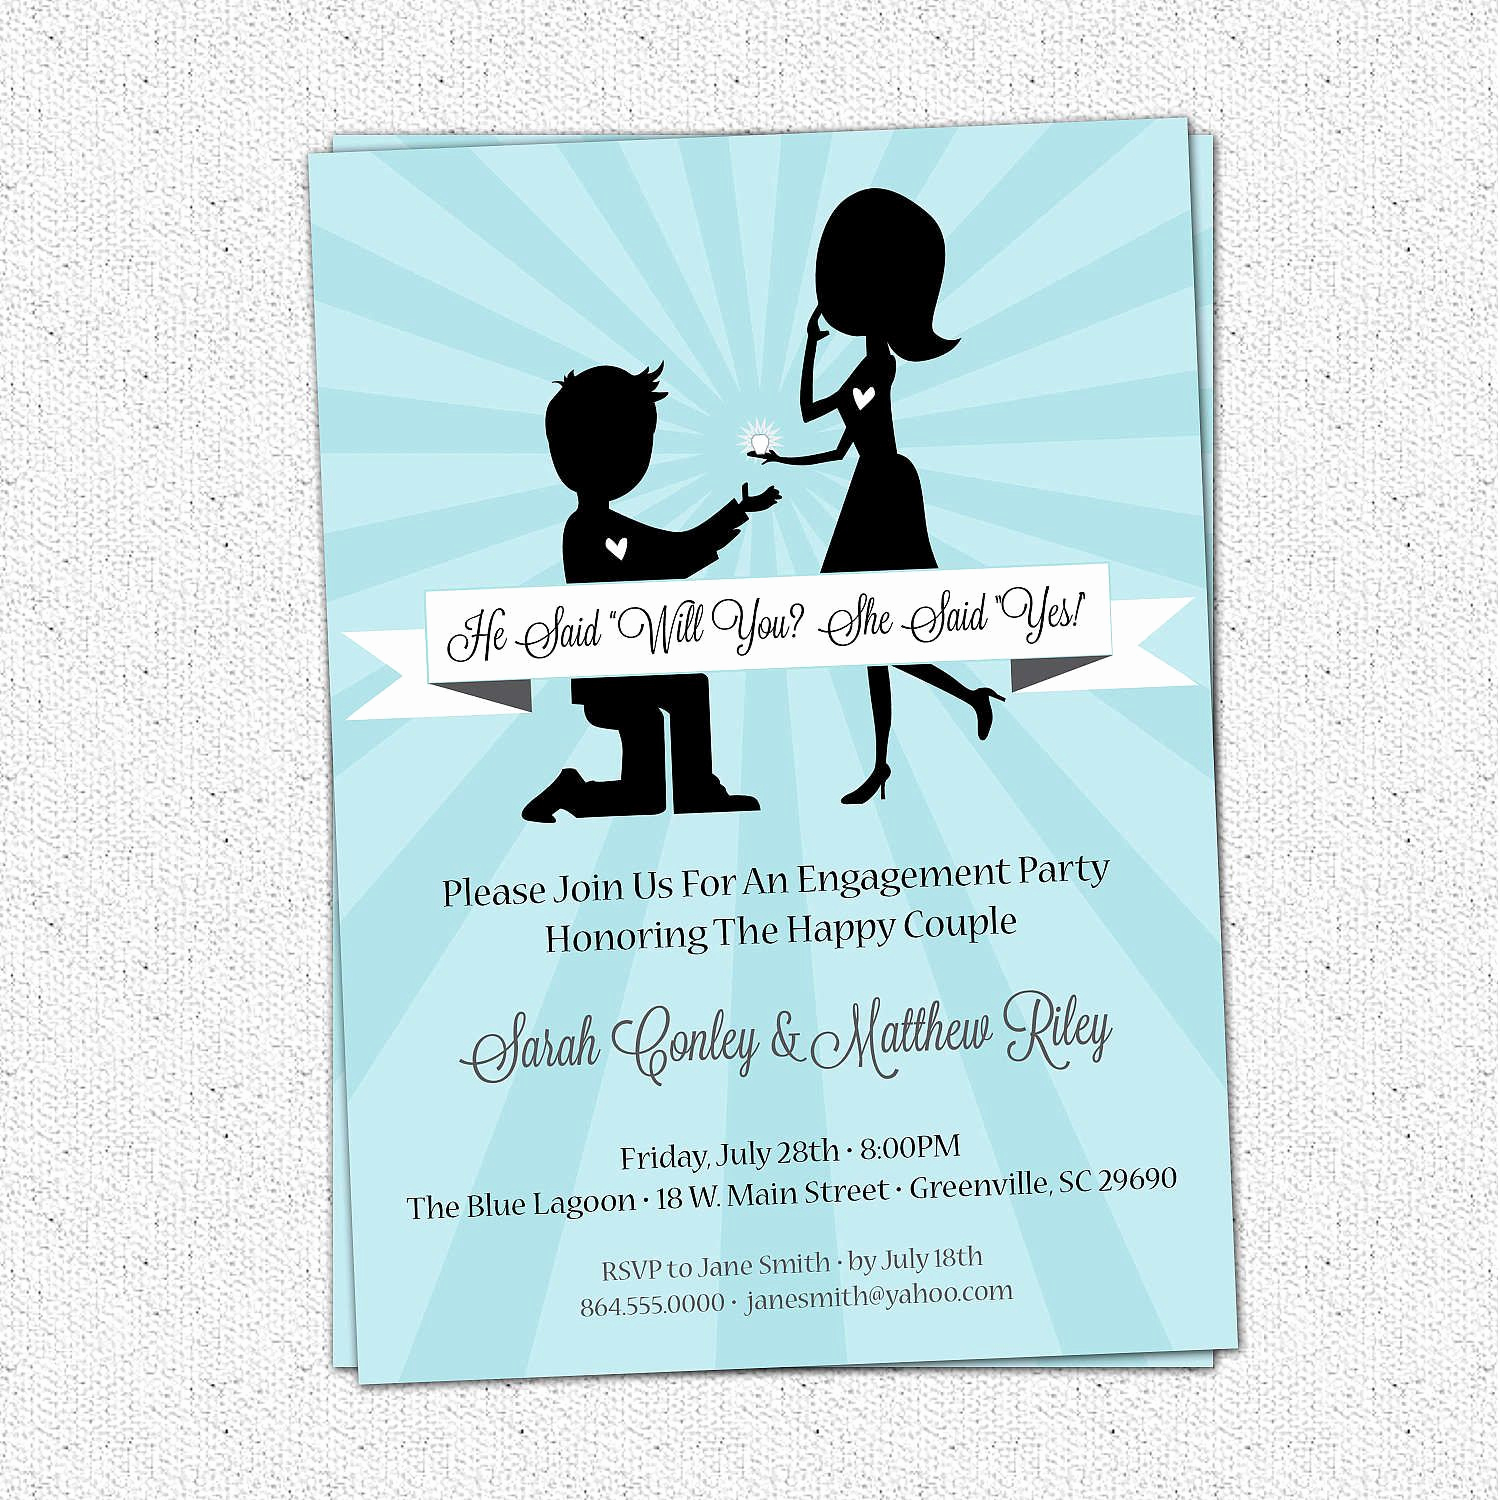 Engagement Party Invitation Templates Unique Engagement Party Invitation Templates